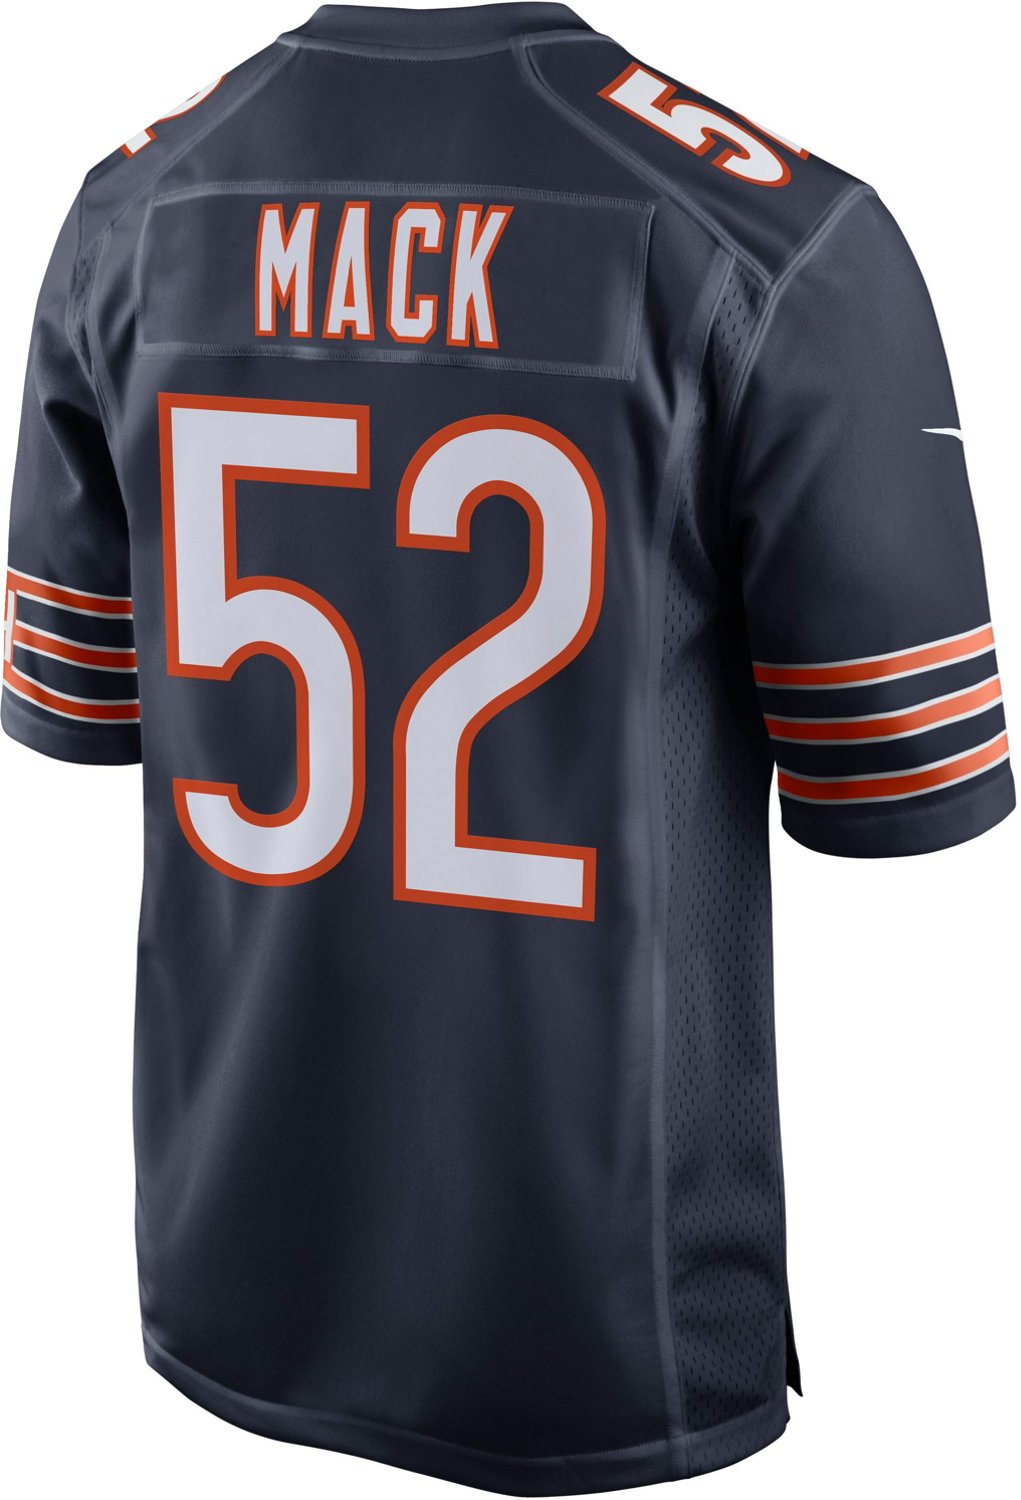 pretty nice 85c6f 5fd26 Nike Men's Chicago Bears Khalil Mack 52 Game Jersey